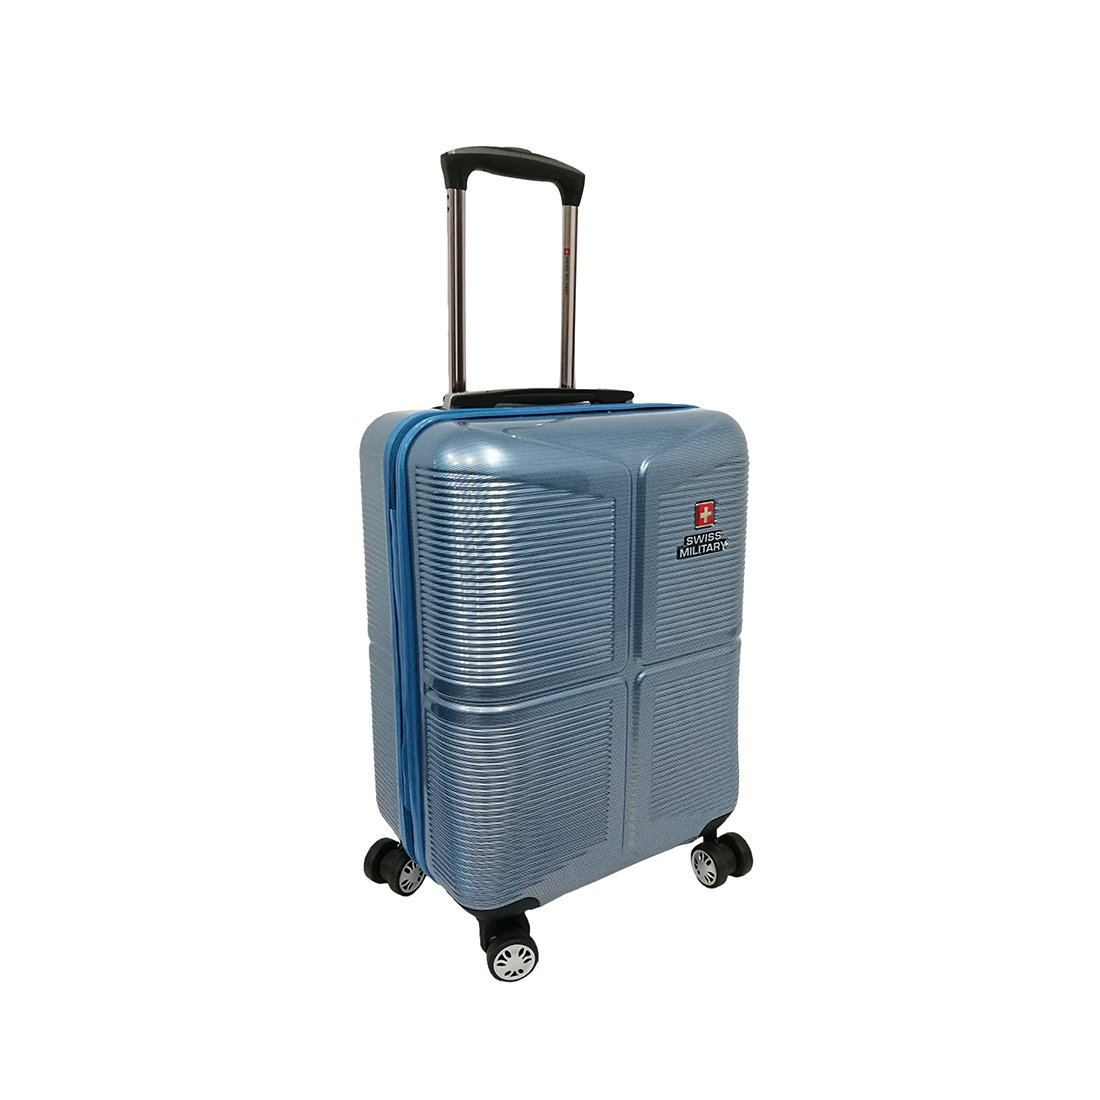 Swiss Military ABS 53 cm Blue Hardsided Check-in Luggage (HTL-28)